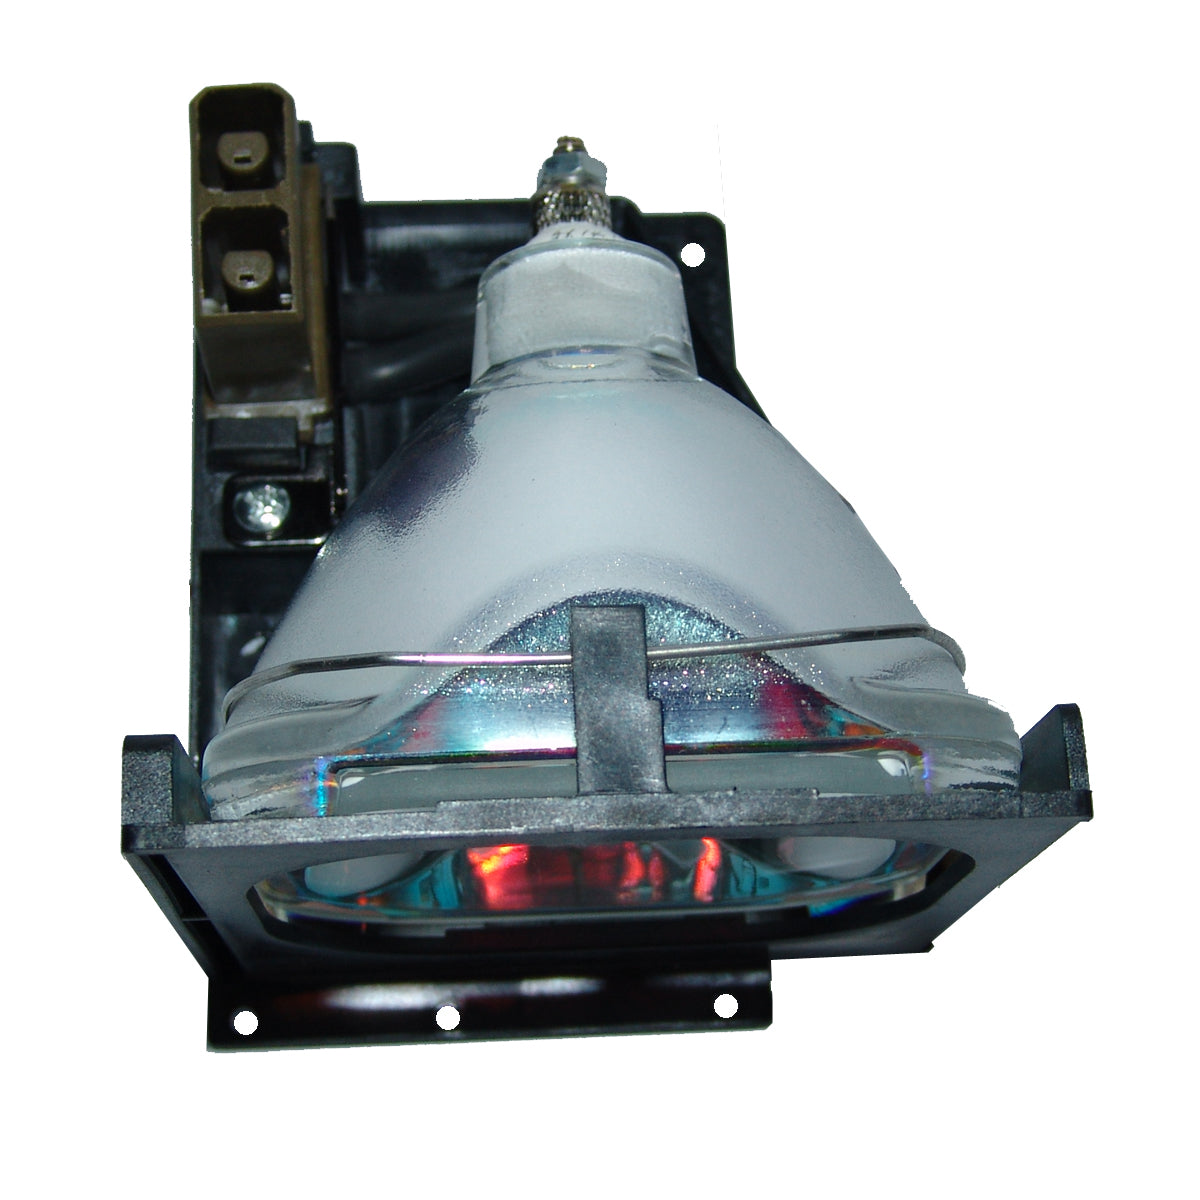 Sanyo POA-LMP19 Philips Projector Lamp Module